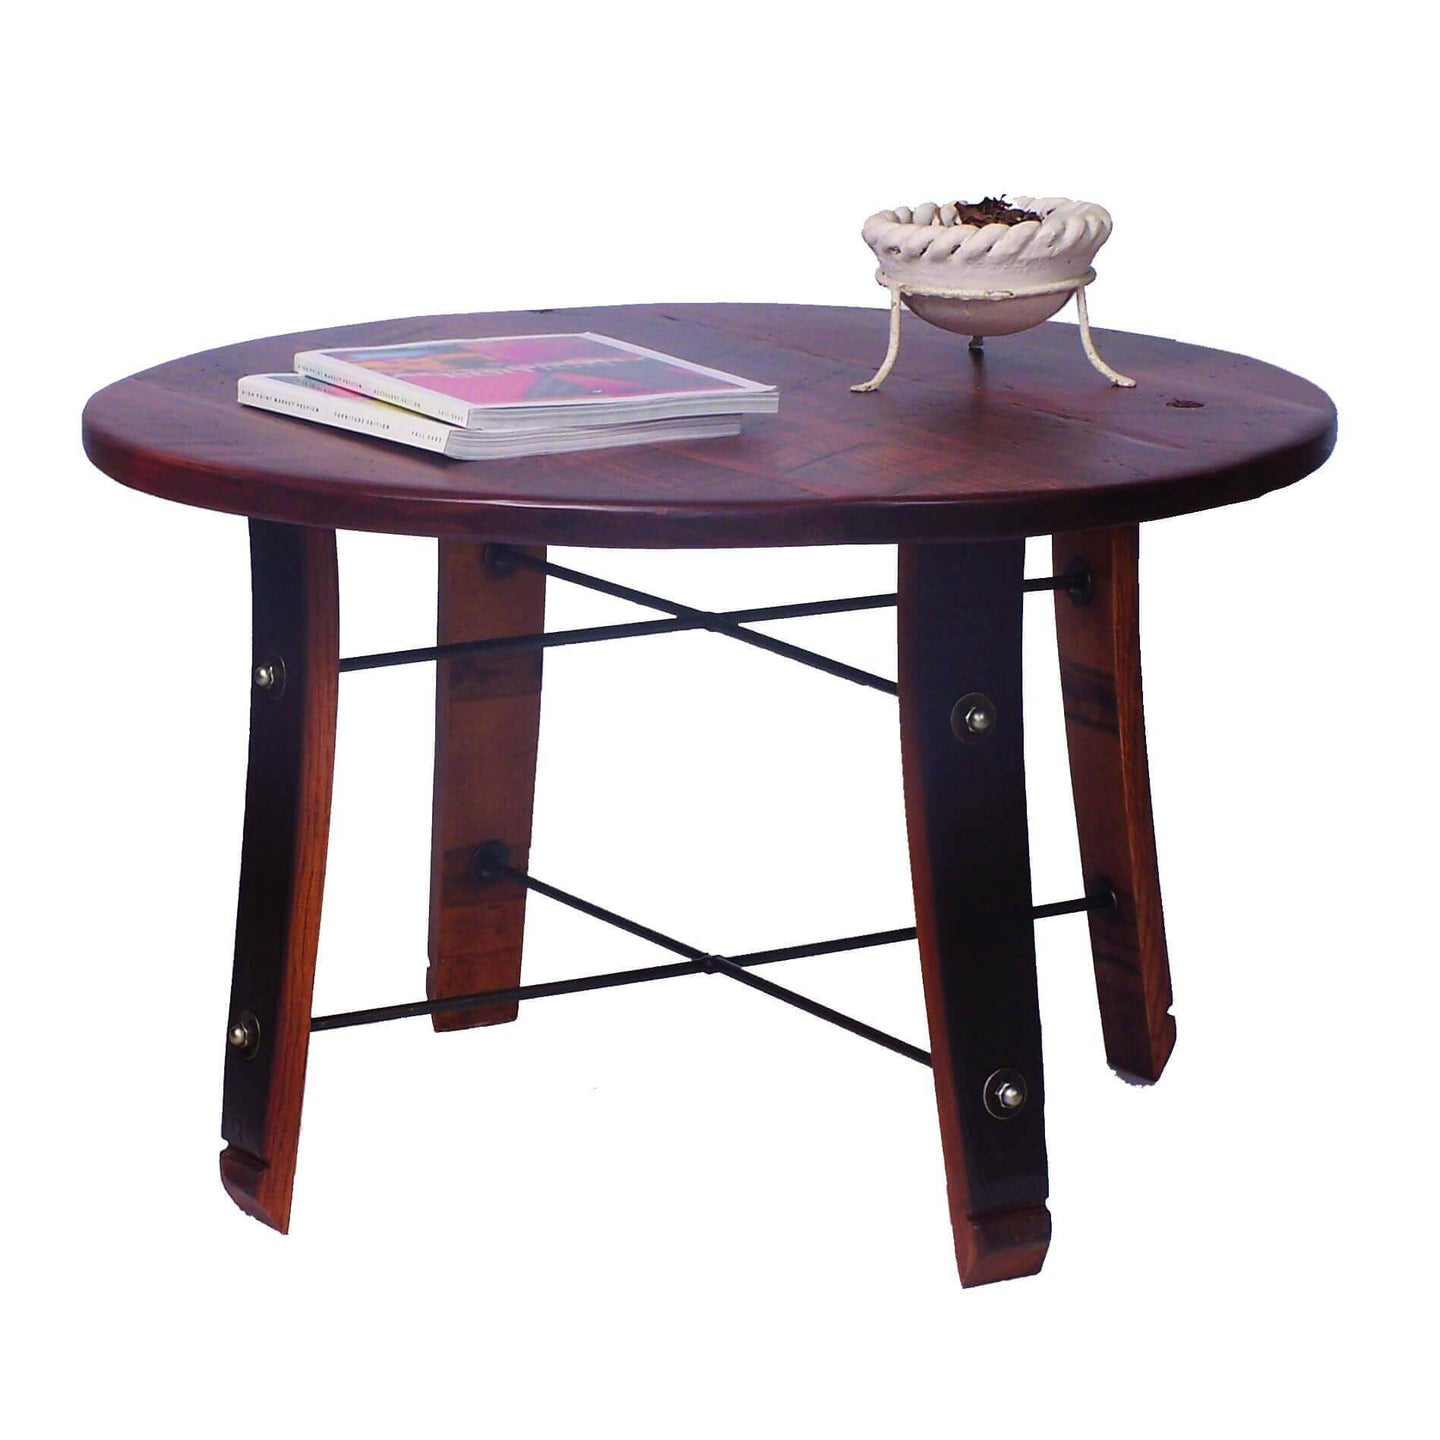 2-Day Designs Round Wine Barrel Stave Coffee Table